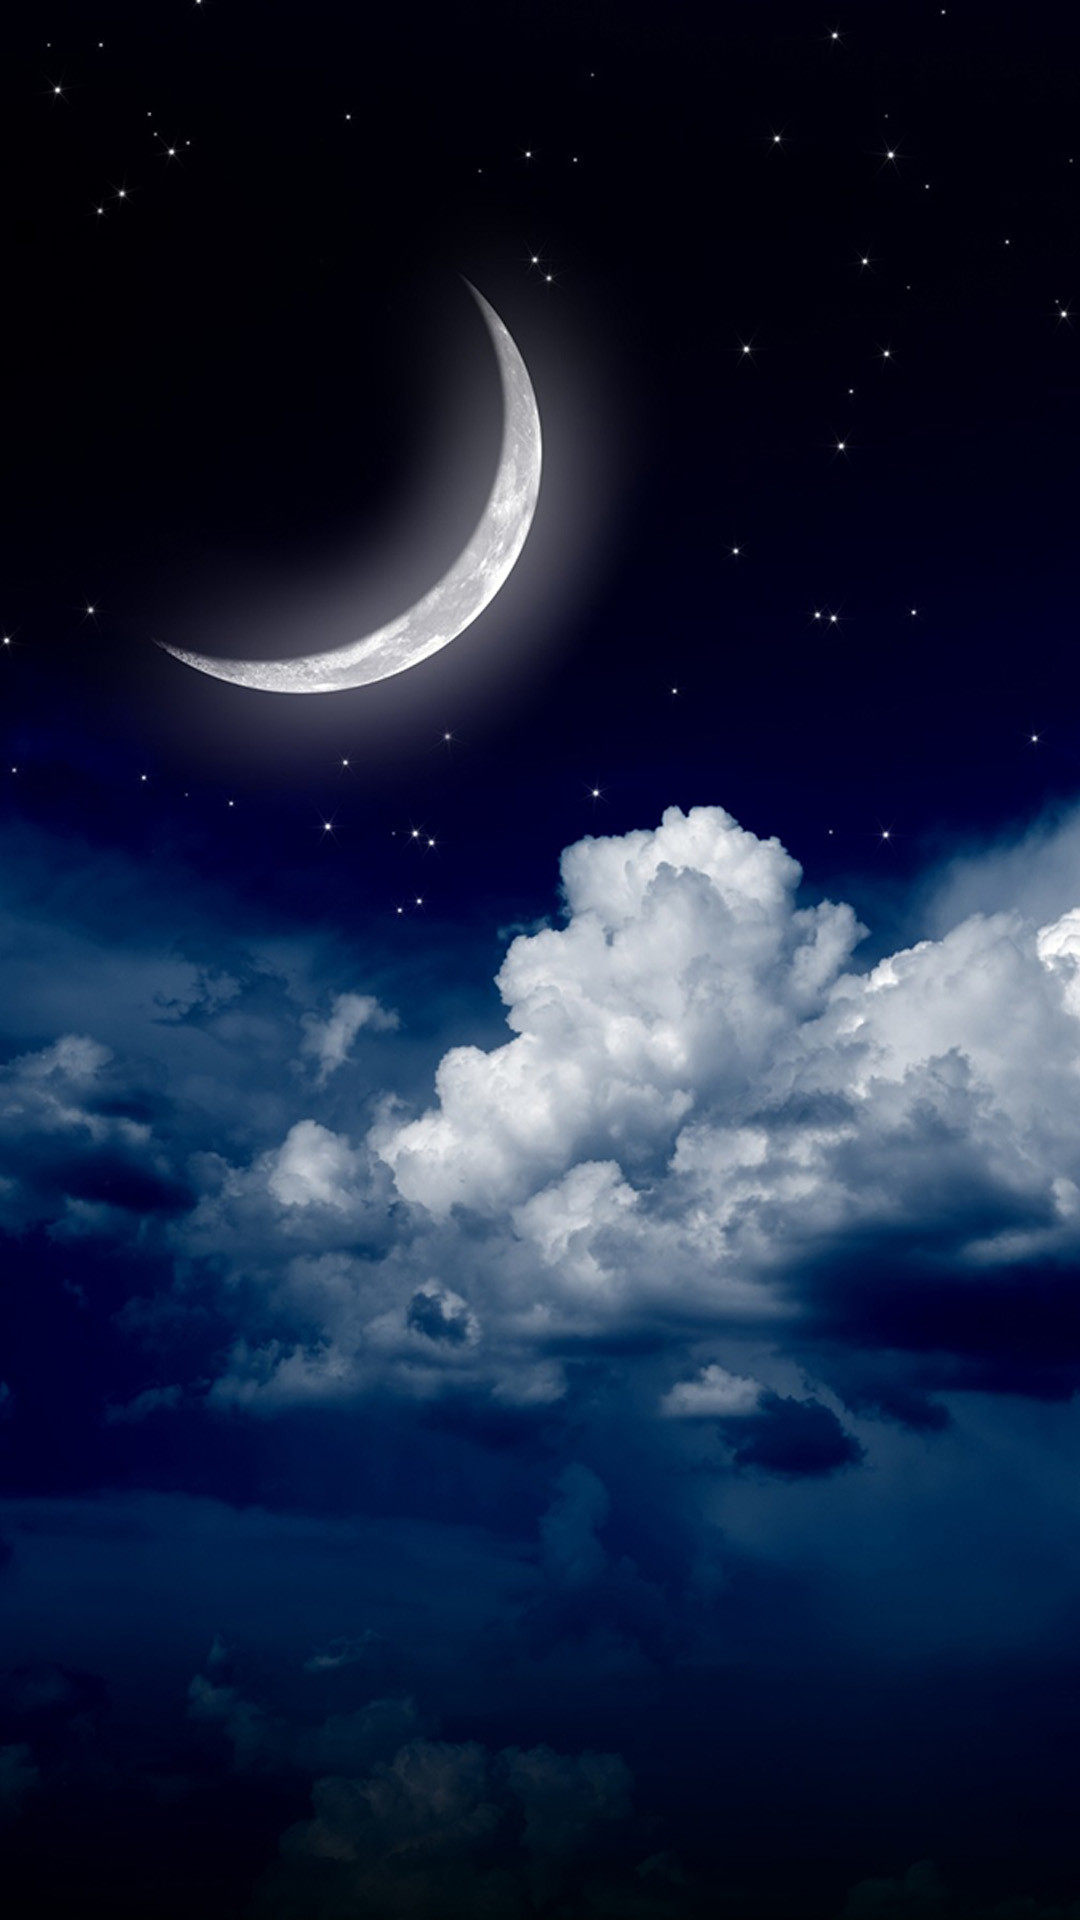 Sky clouds moon. iPhone wallpapers of night stars view and scenery. Tap to  check